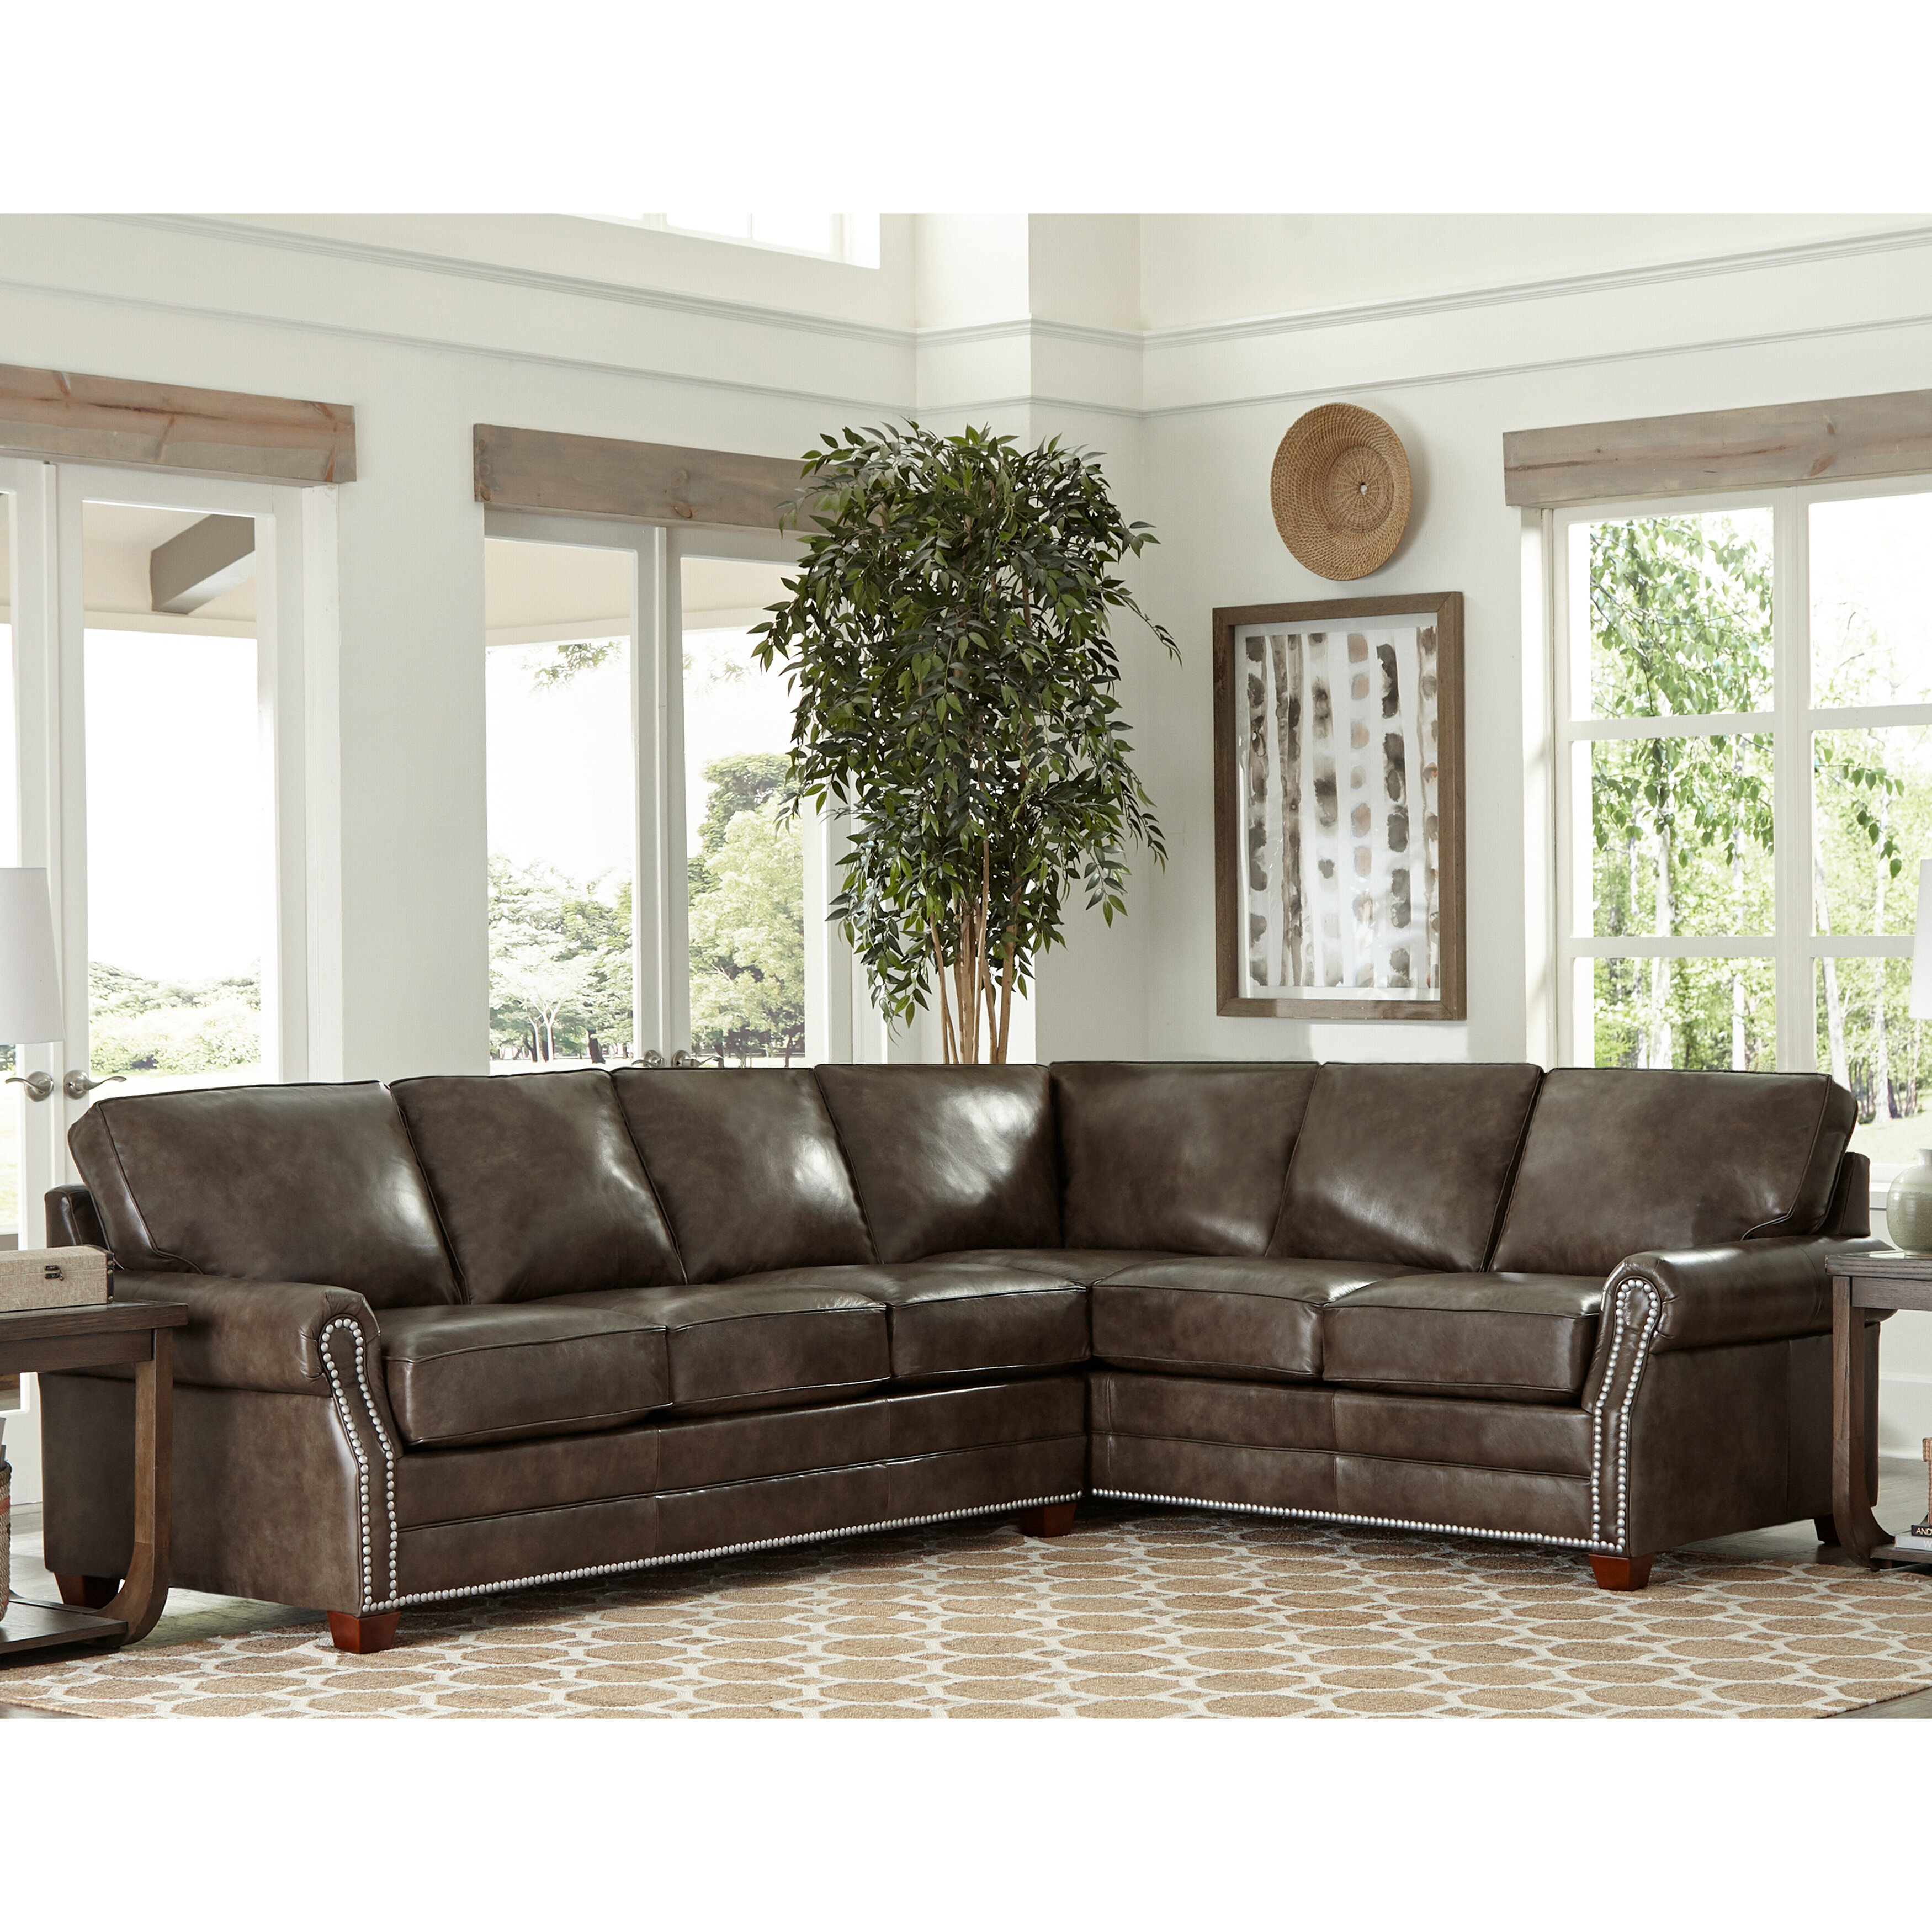 17 Stories Susana Leather Sleeper Sectional | Wayfair